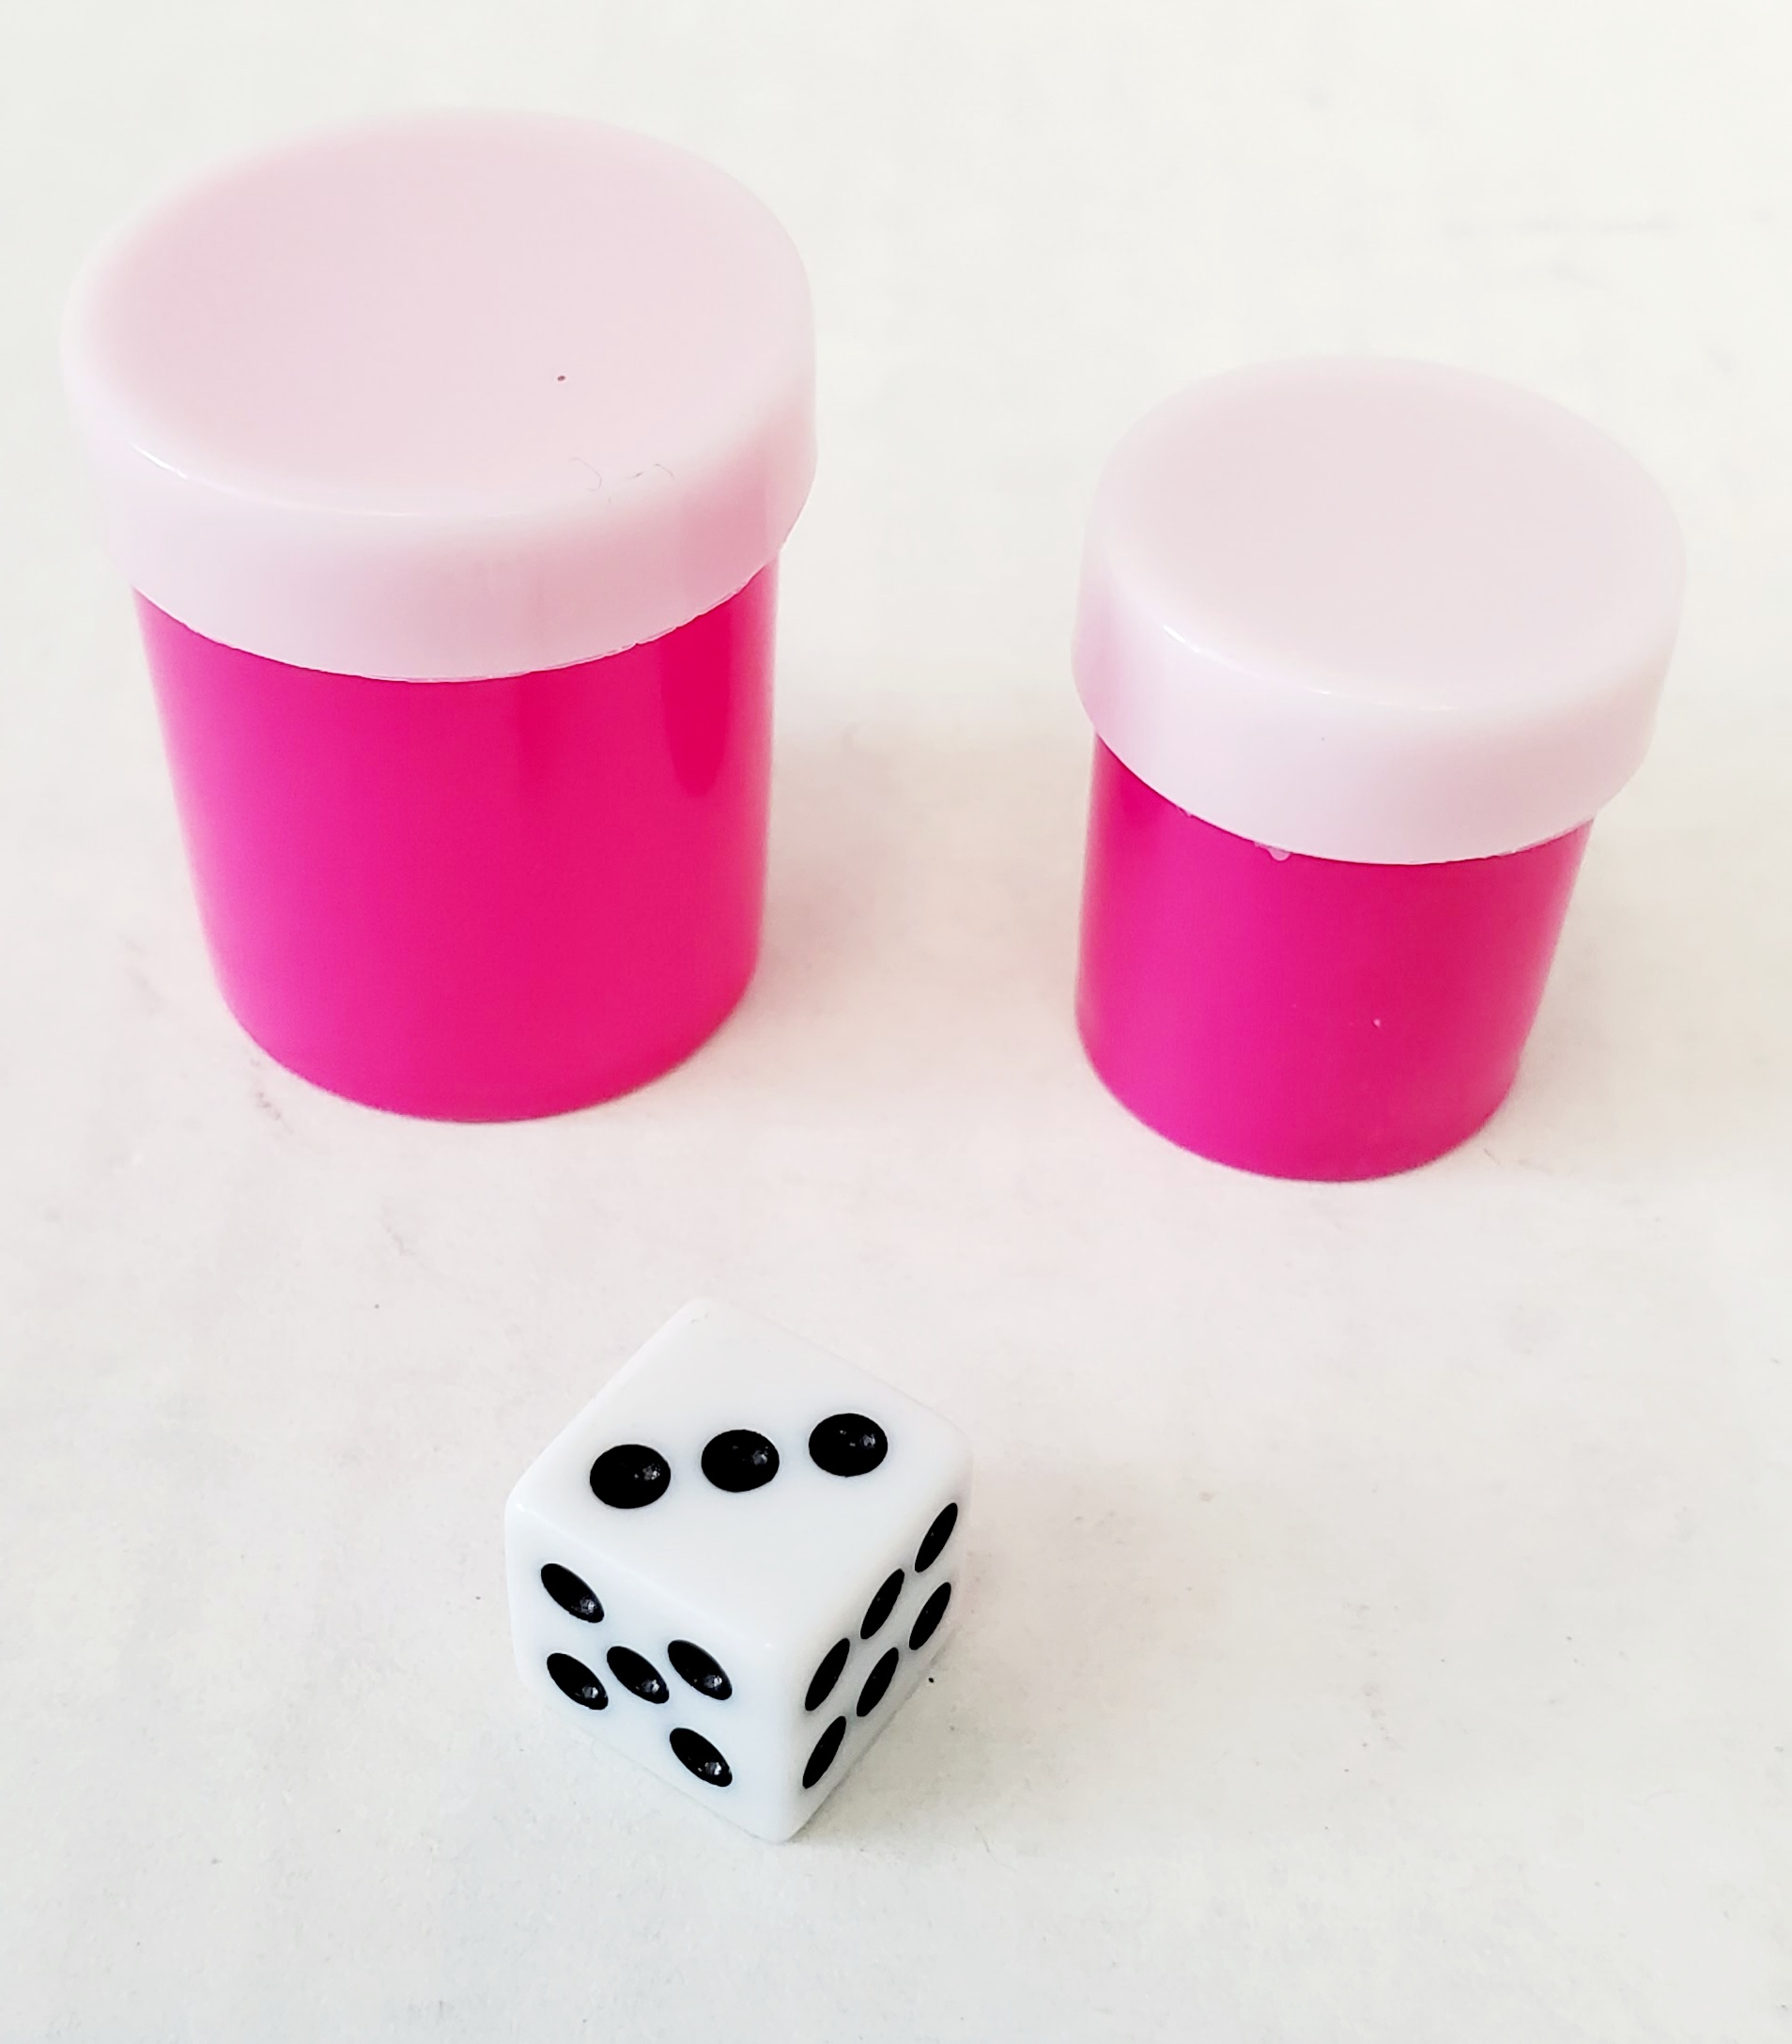 Magic Mystery Dice #5727 - Crazy Cube